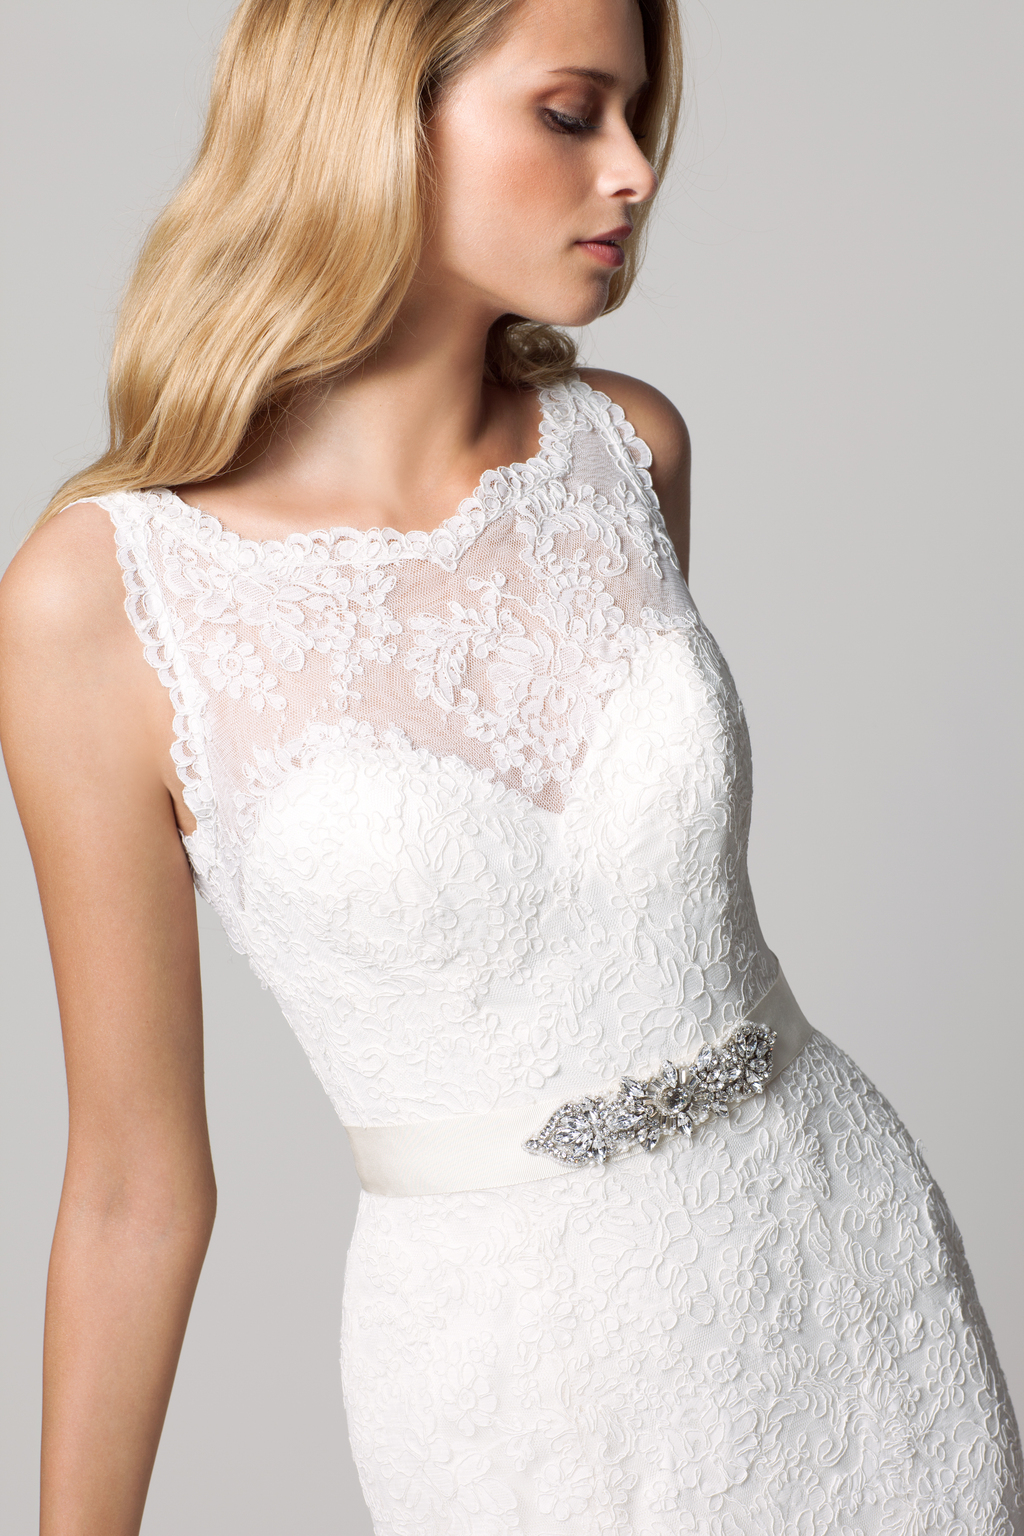 Fall-2012-wedding-dress-wtoo-bridal-gown-by-watters-lace-illusion-neckline.full